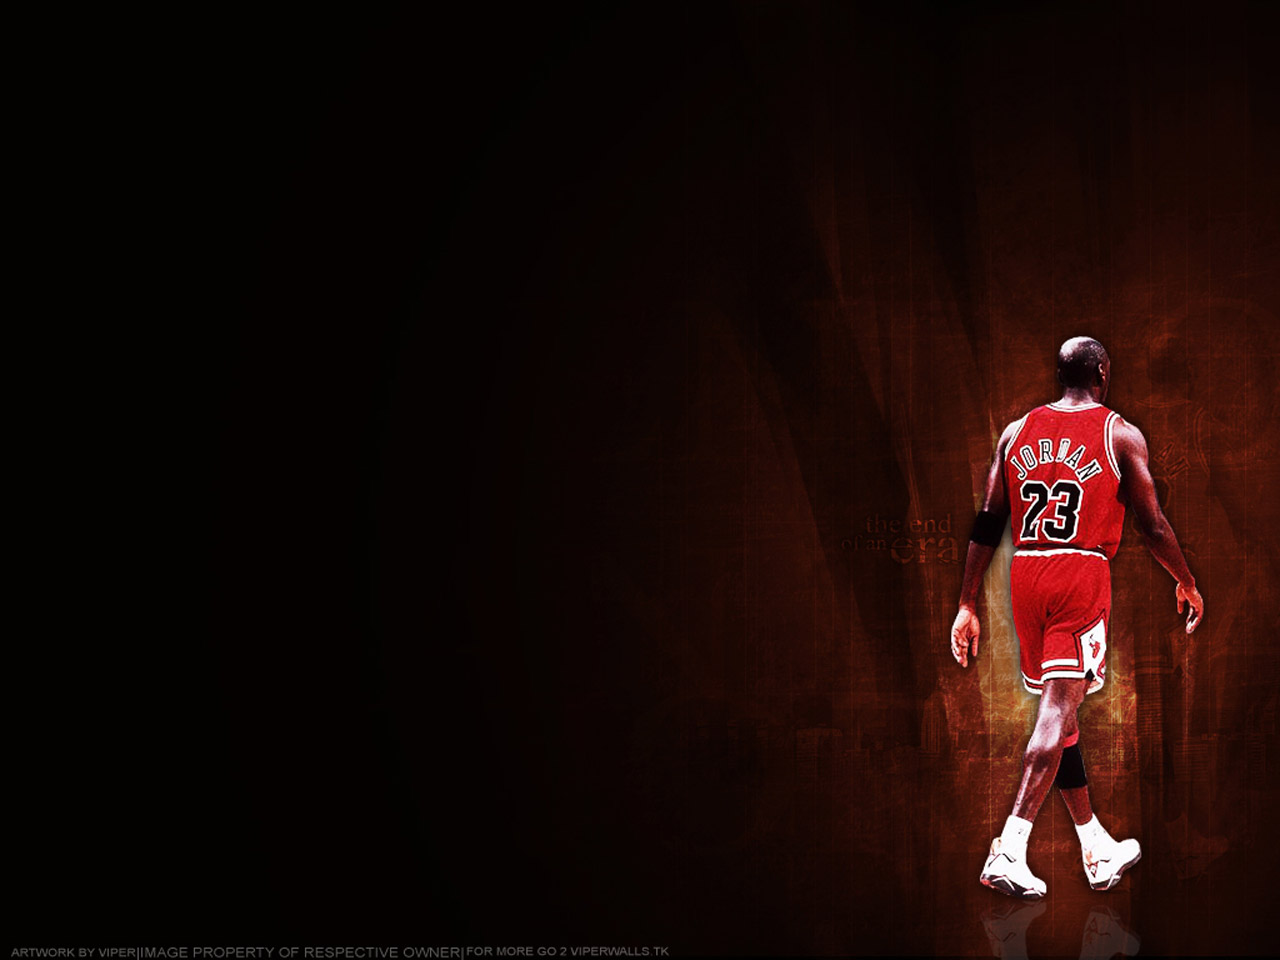 Air Jordan Wallpapers